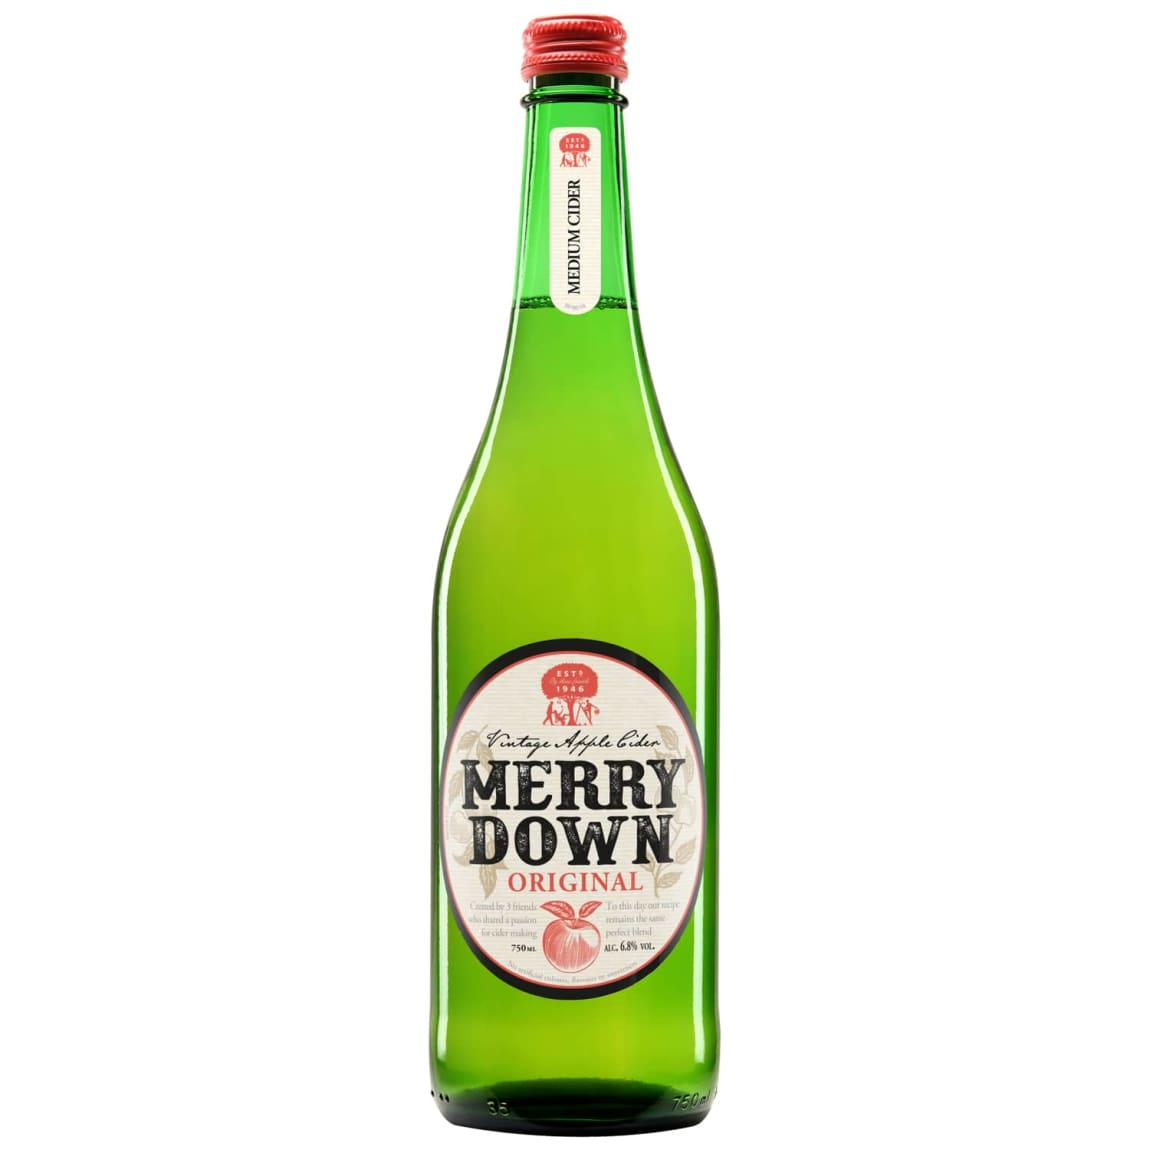 Merrydown Vintage Medium Cider 750ml